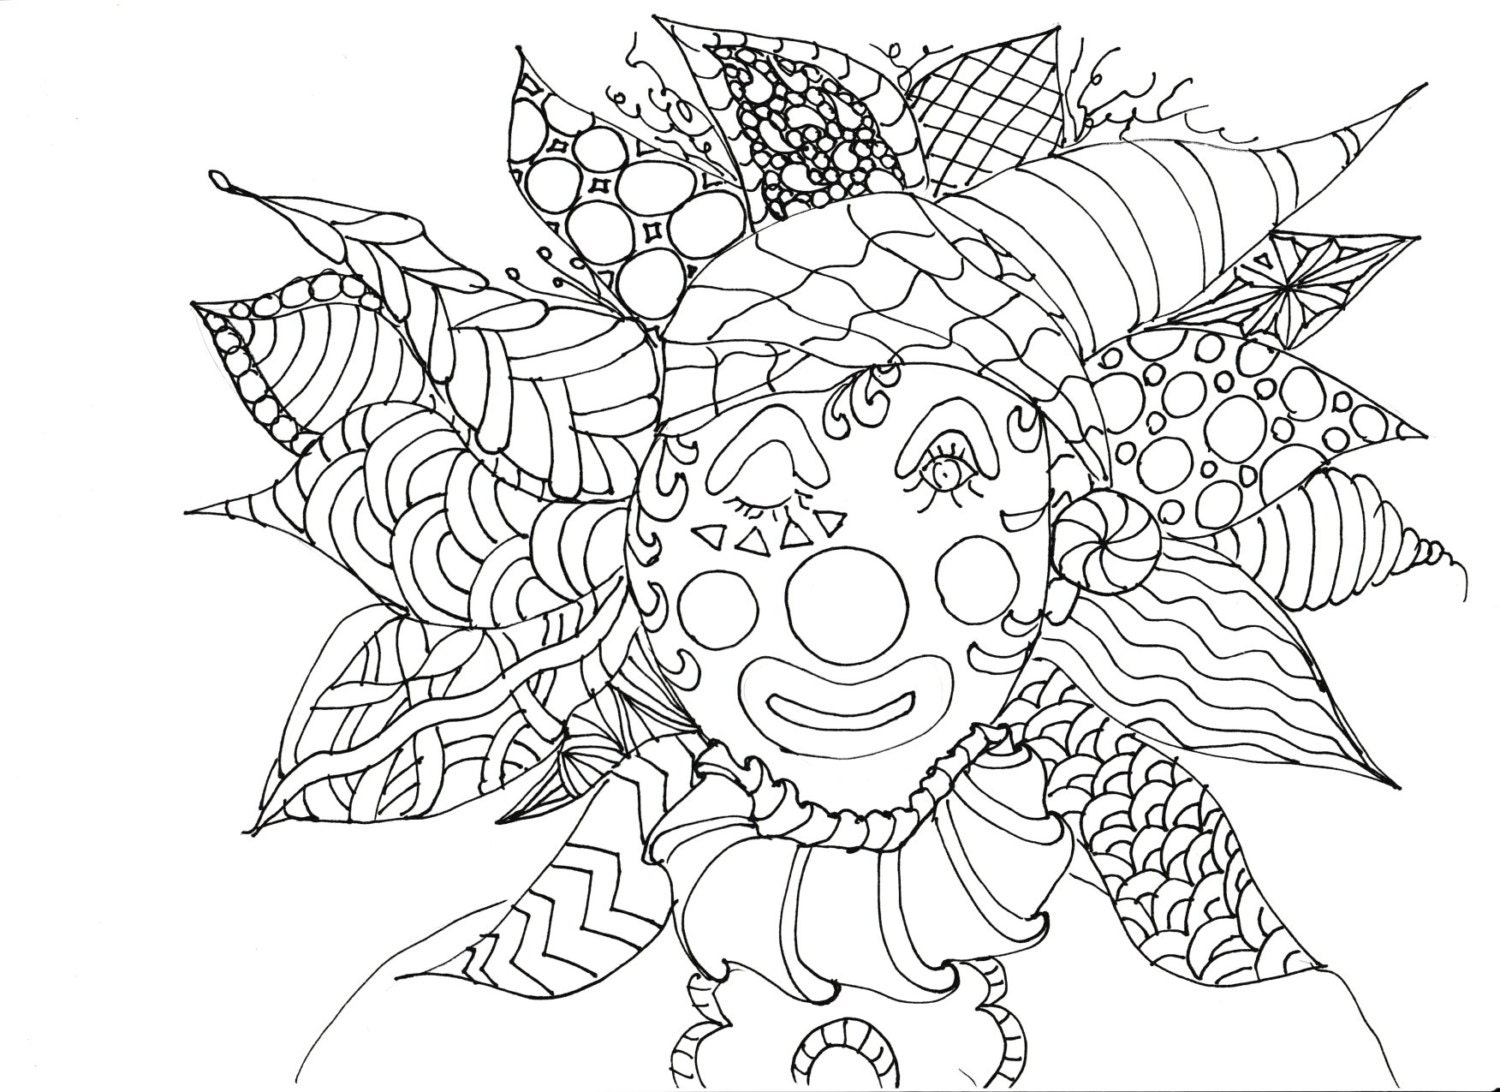 Coloring Pages, Printable Coloring Pages, Adult Coloring Pages ...